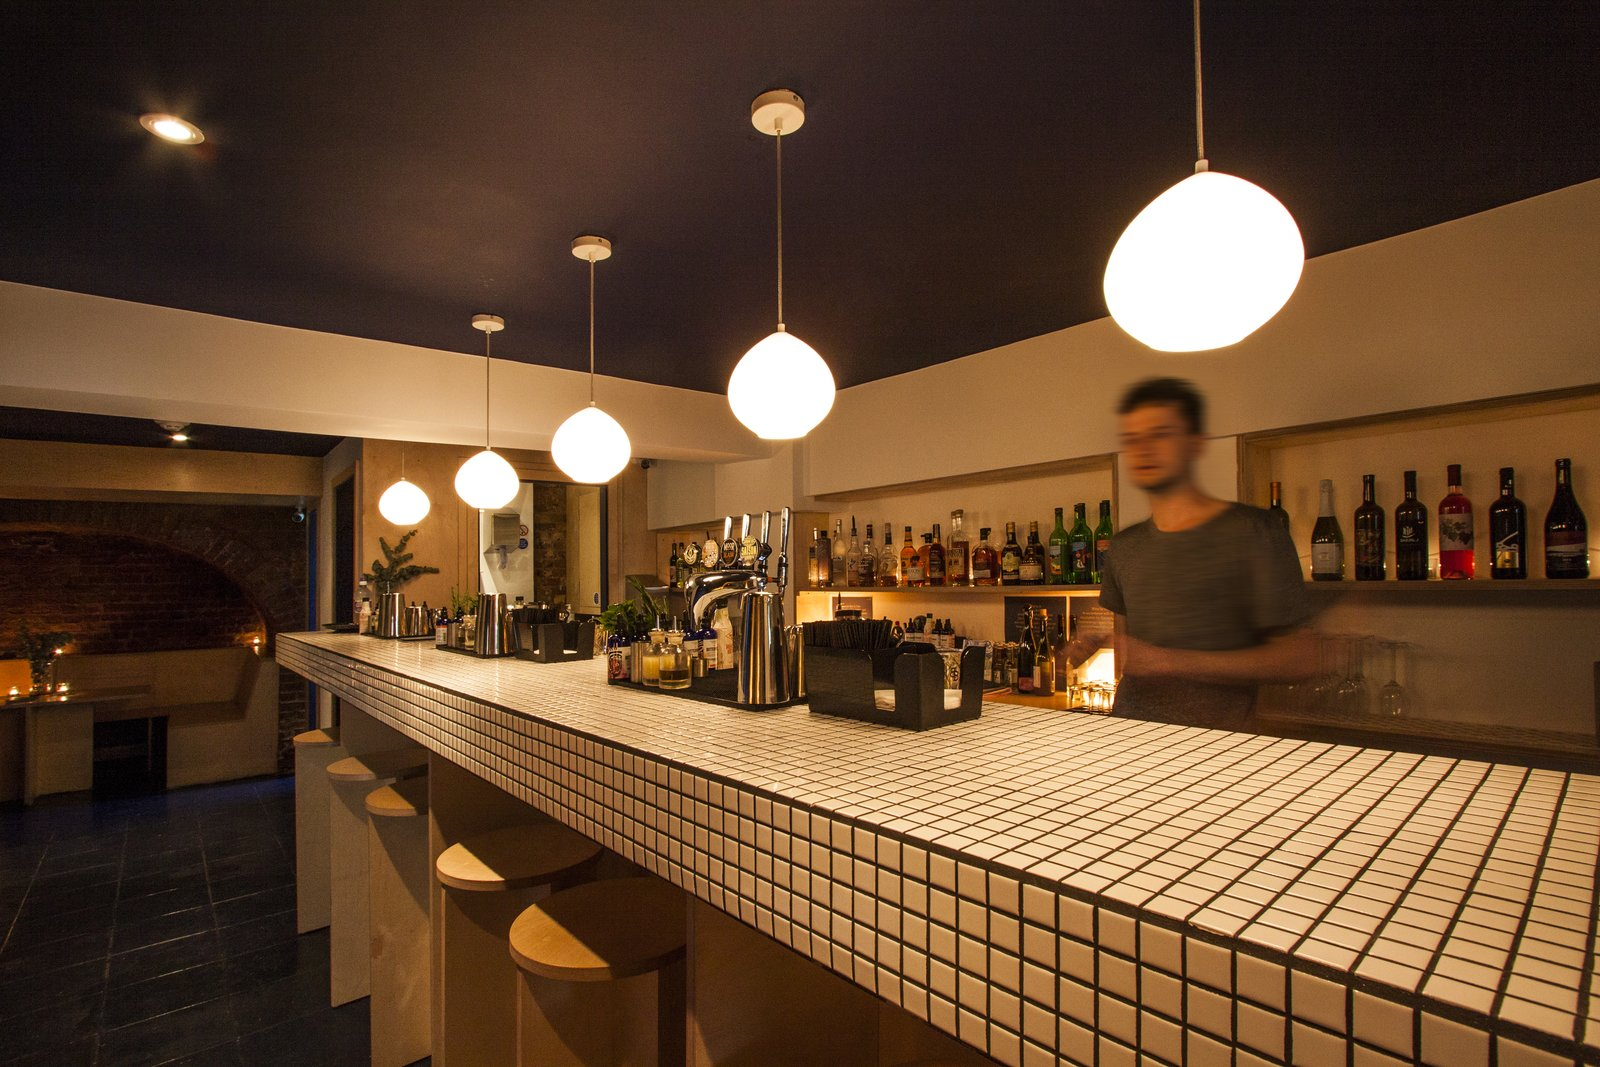 photo 7 of 11 in 10 london bars every design lover should visit dwell